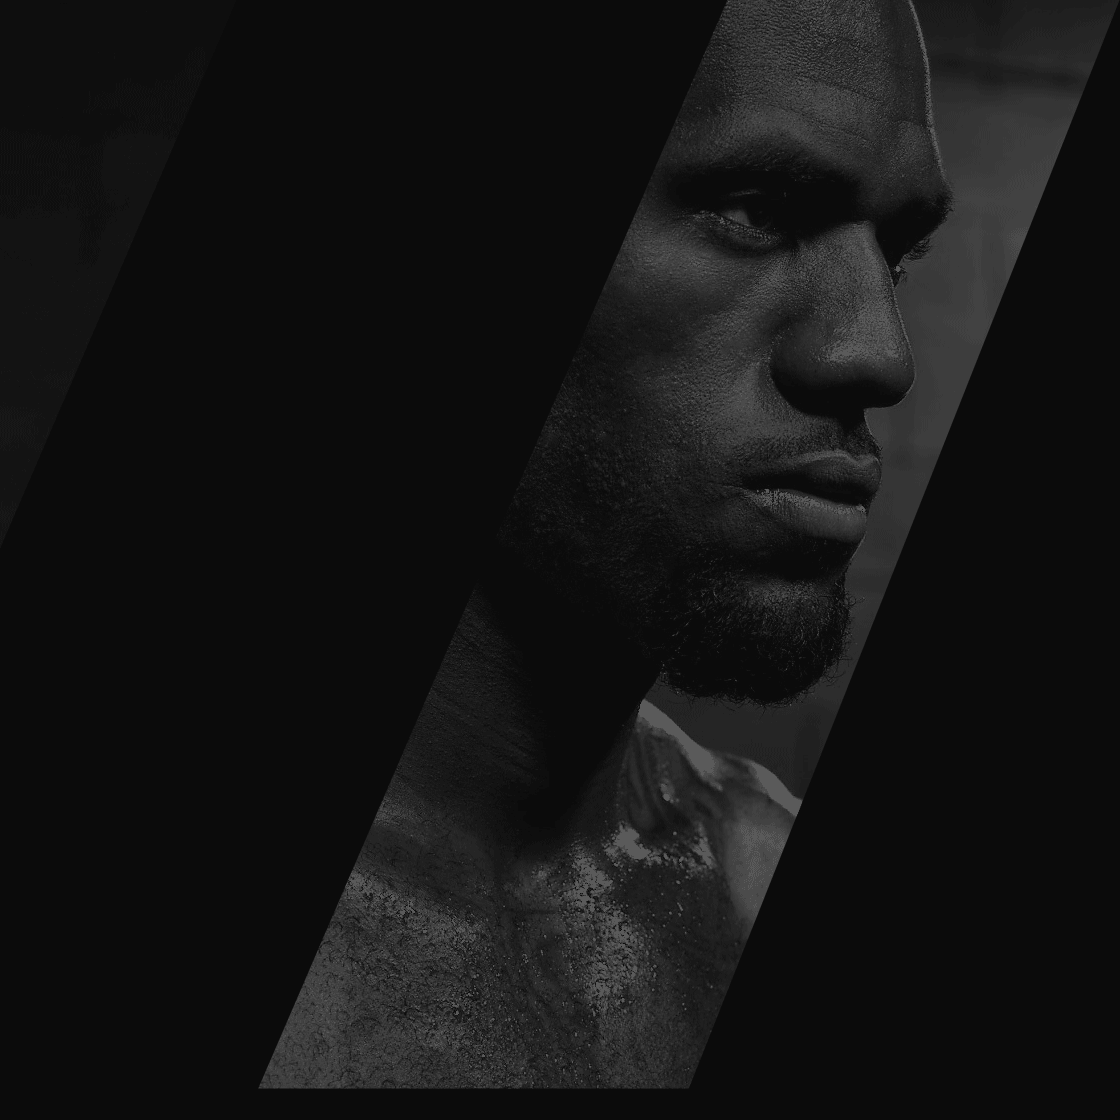 <strong>Branding & Web Design</strong>. Portfolio site concept for Atlanta digital agency Fortyfour.